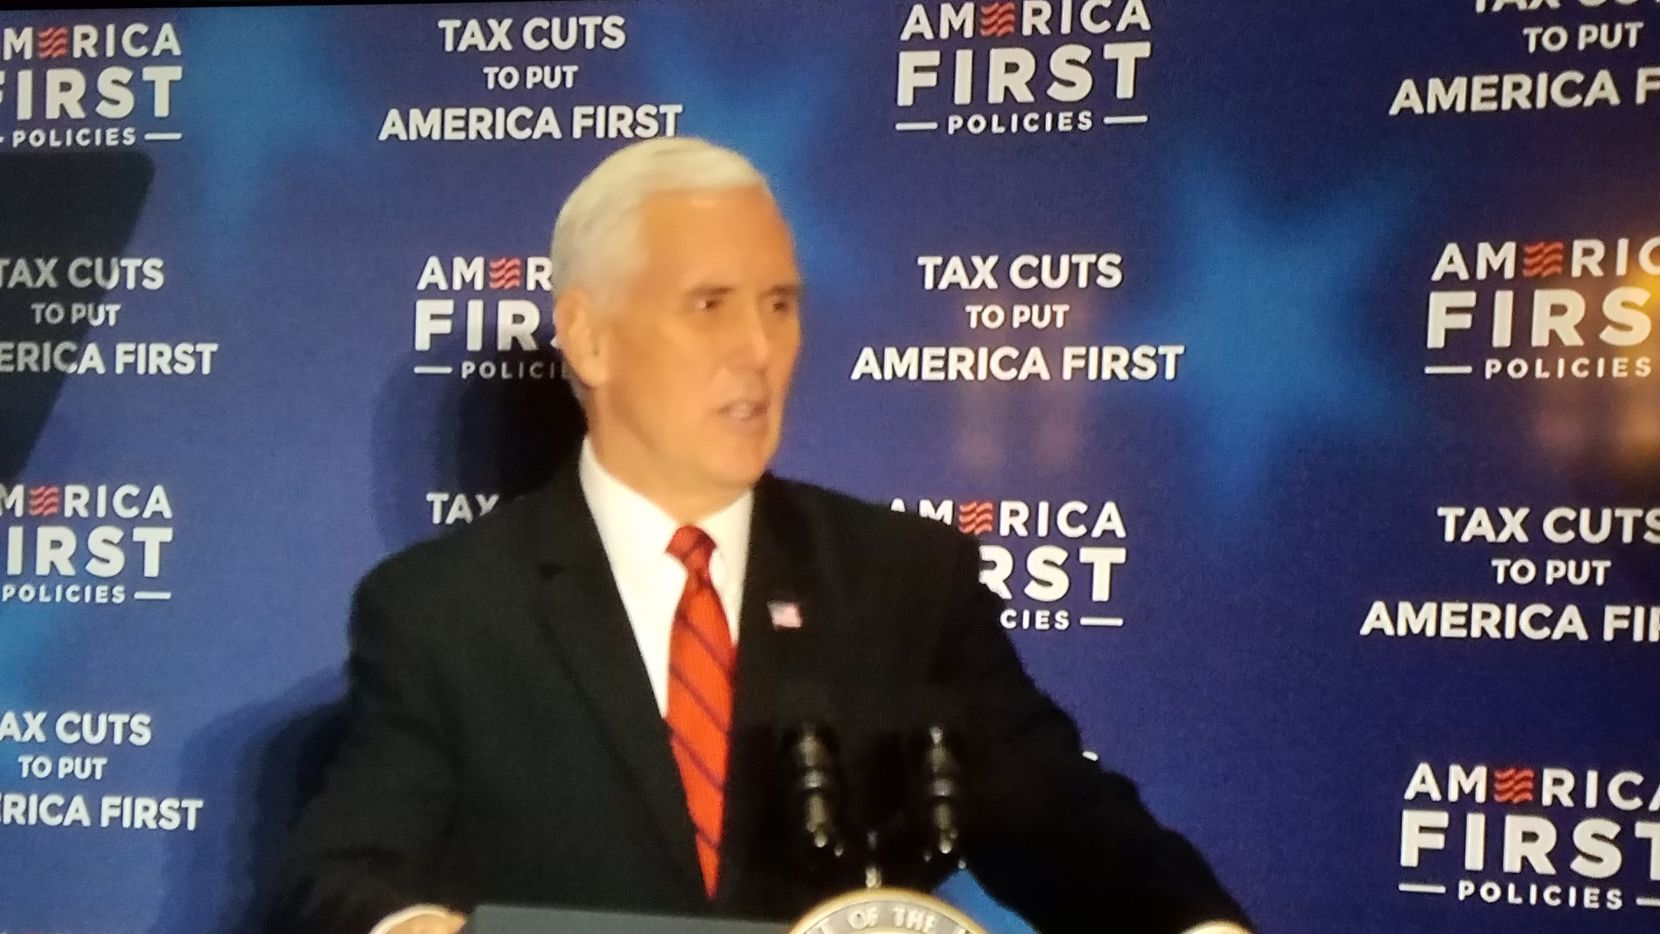 Vice President Mike Pence appears on a TV screen at the Dallas Sheraton on Feb. 17, 2018, for an event focused on the GOP's $1.5 trillion tax revamp.